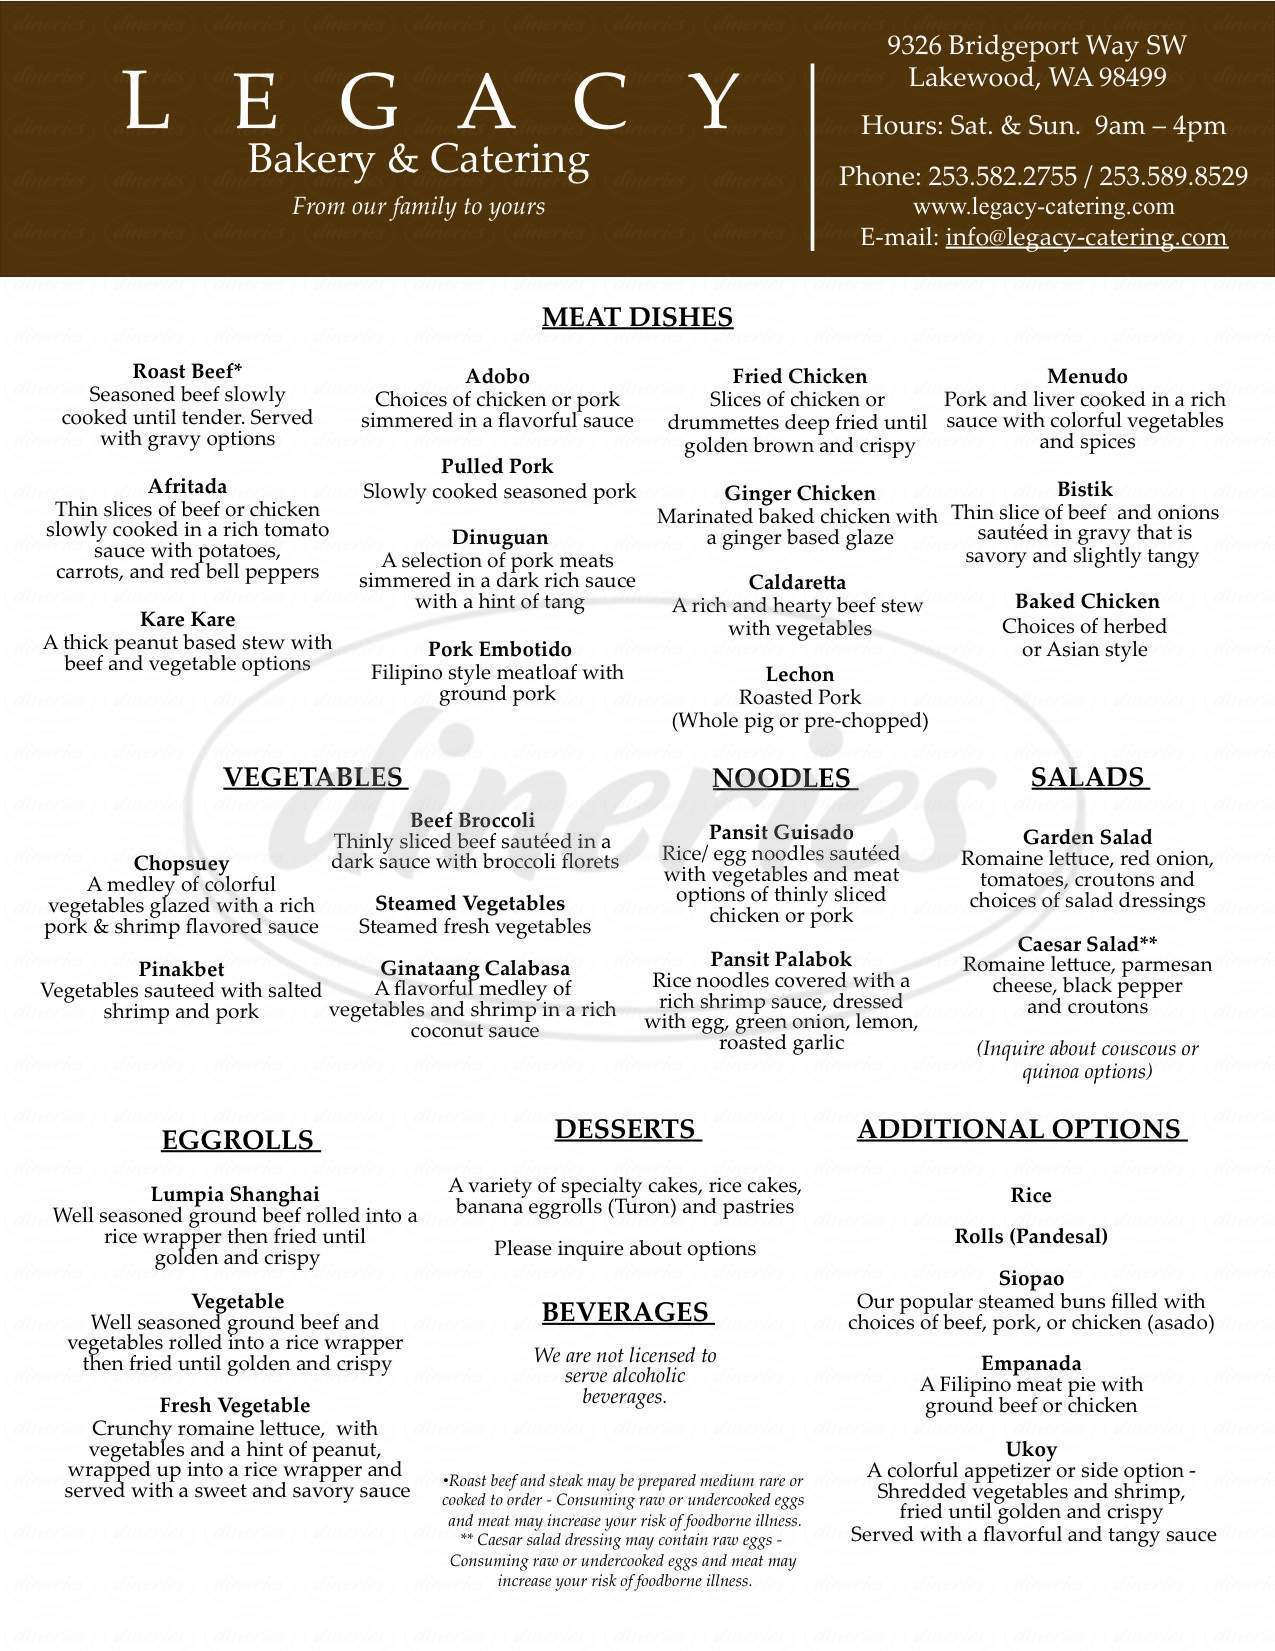 menu for Legacy Bakery & Catering